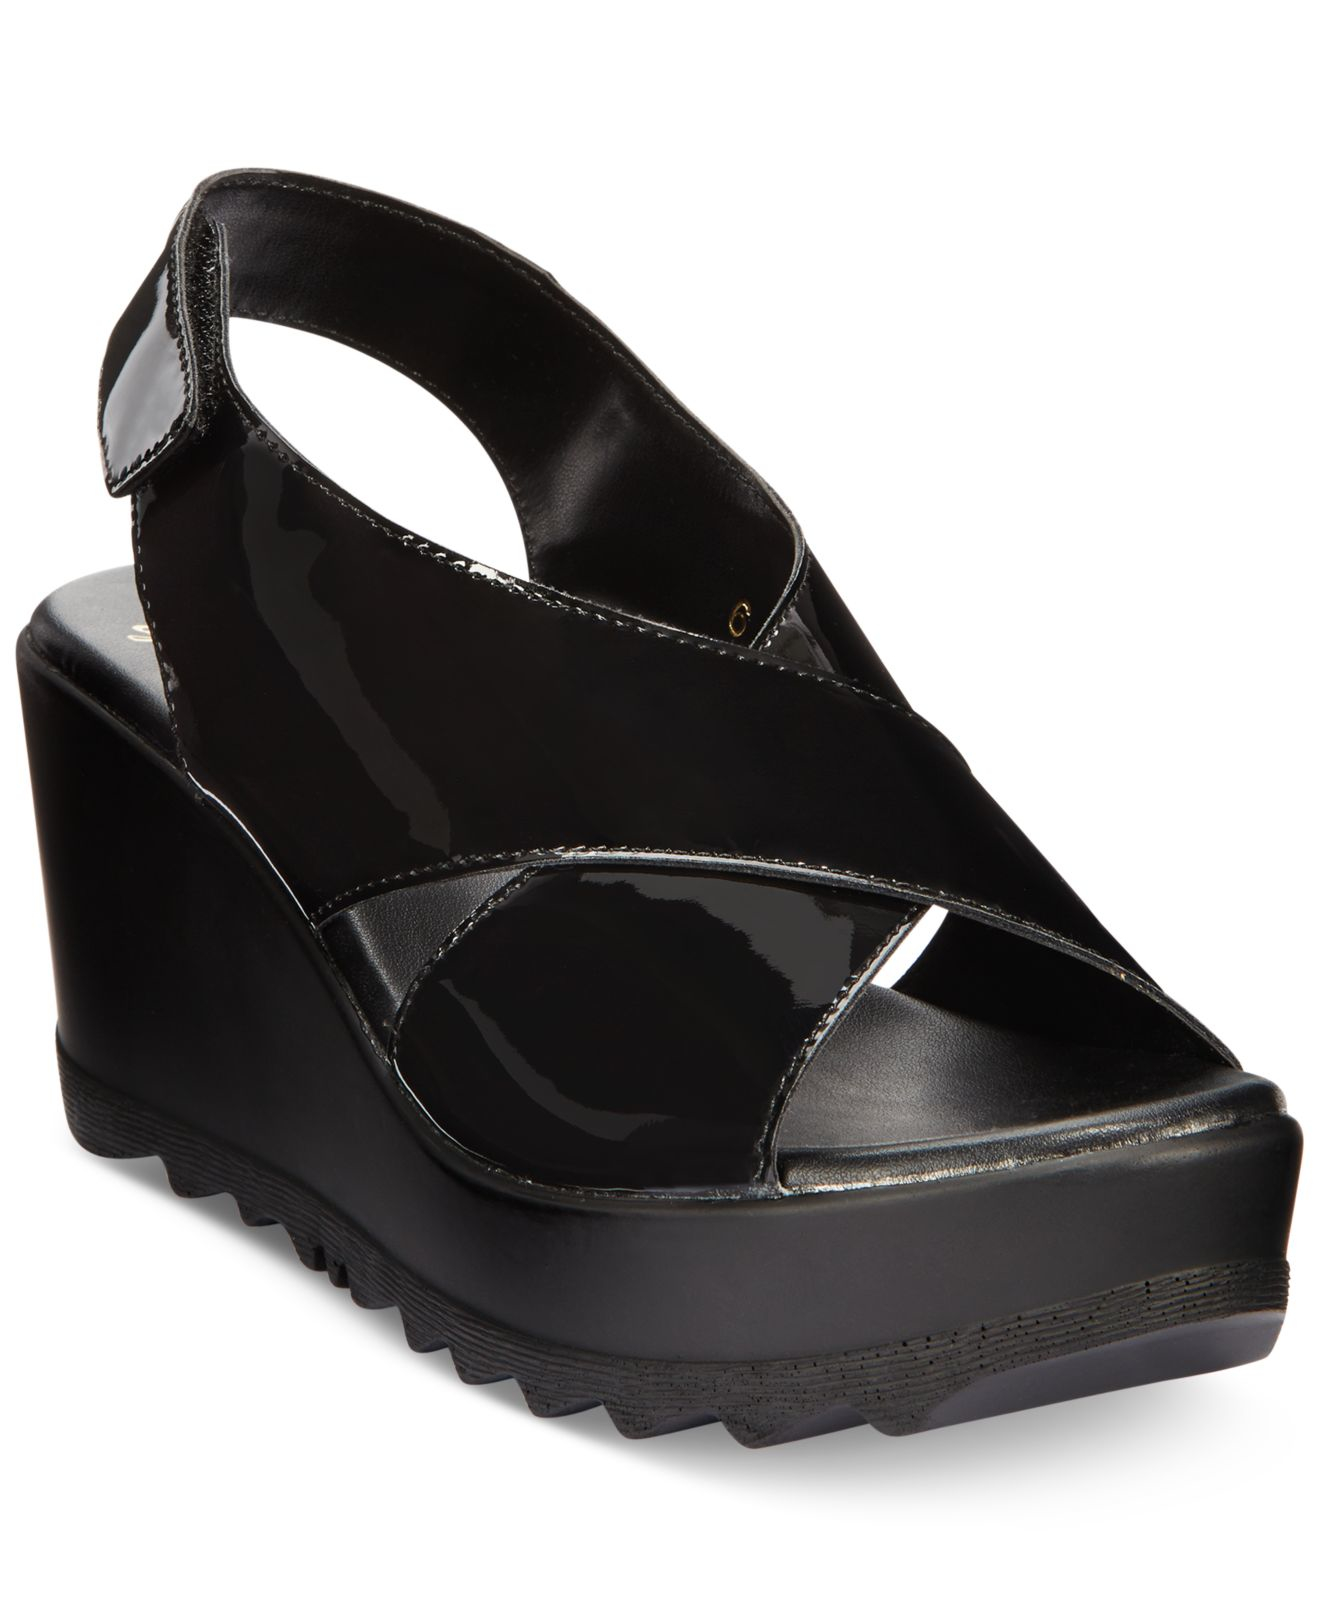 Product - Sudini Womens Black Platform & Wedges Sandals Size New. Product Image. Price $ Product Title. Sudini Womens Black Platform & Wedges Sandals Size New. Product - Womens Black Wedge Sandals Gothic Punk Slides Star .